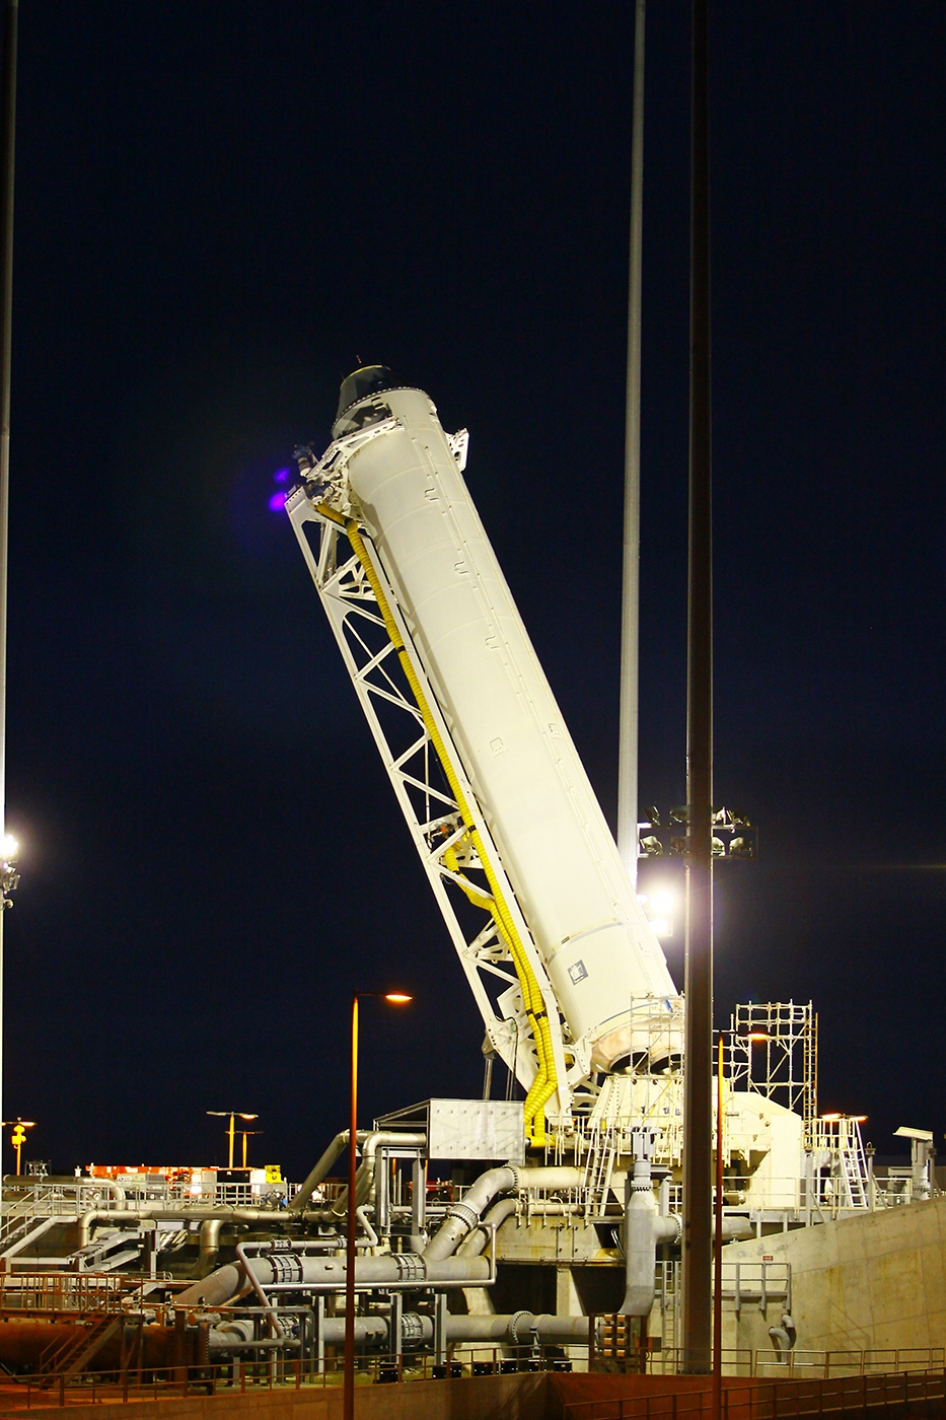 Antares Rocket At Wallops Flight Facility Launch Pad